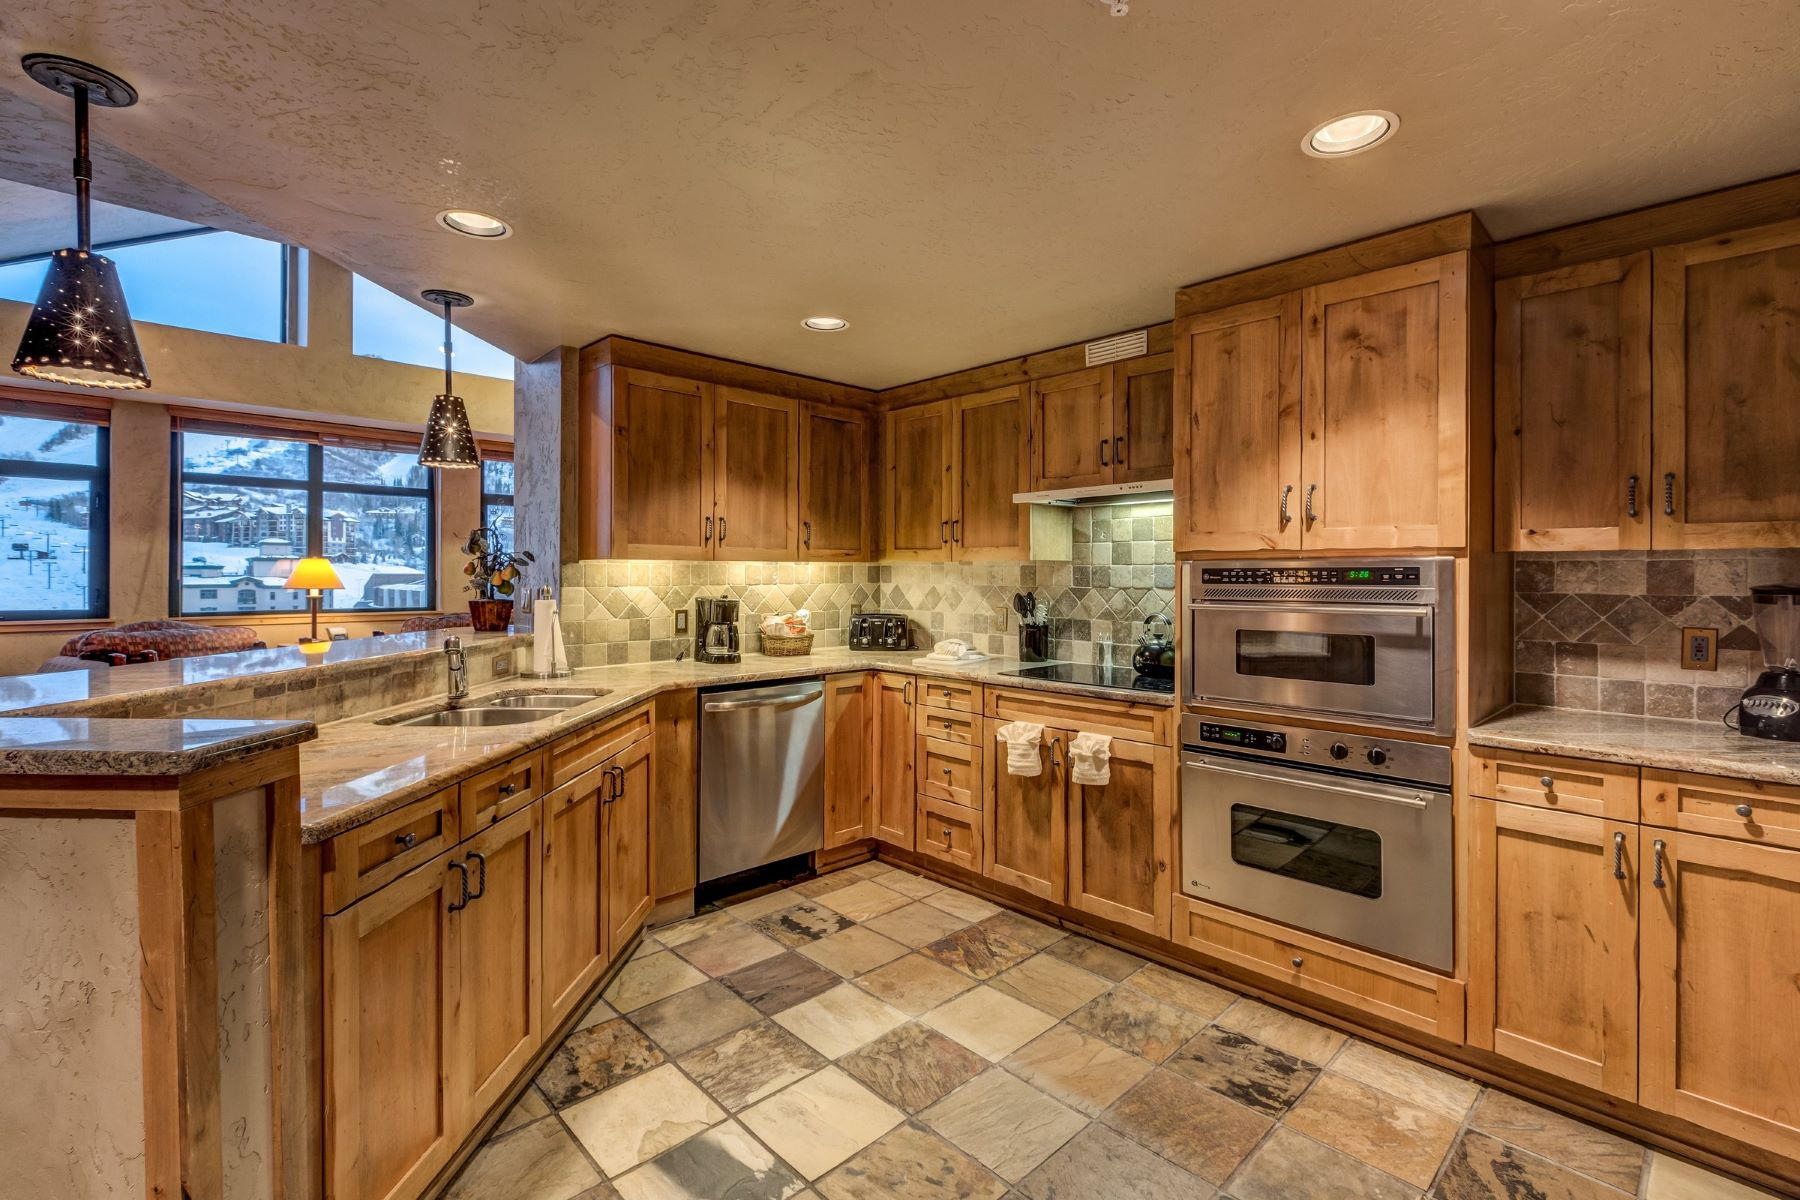 Additional photo for property listing at Steamboat Grand Resort 2300 Mt. Werner Cir 706 QII Steamboat Springs, Colorado 80487 United States